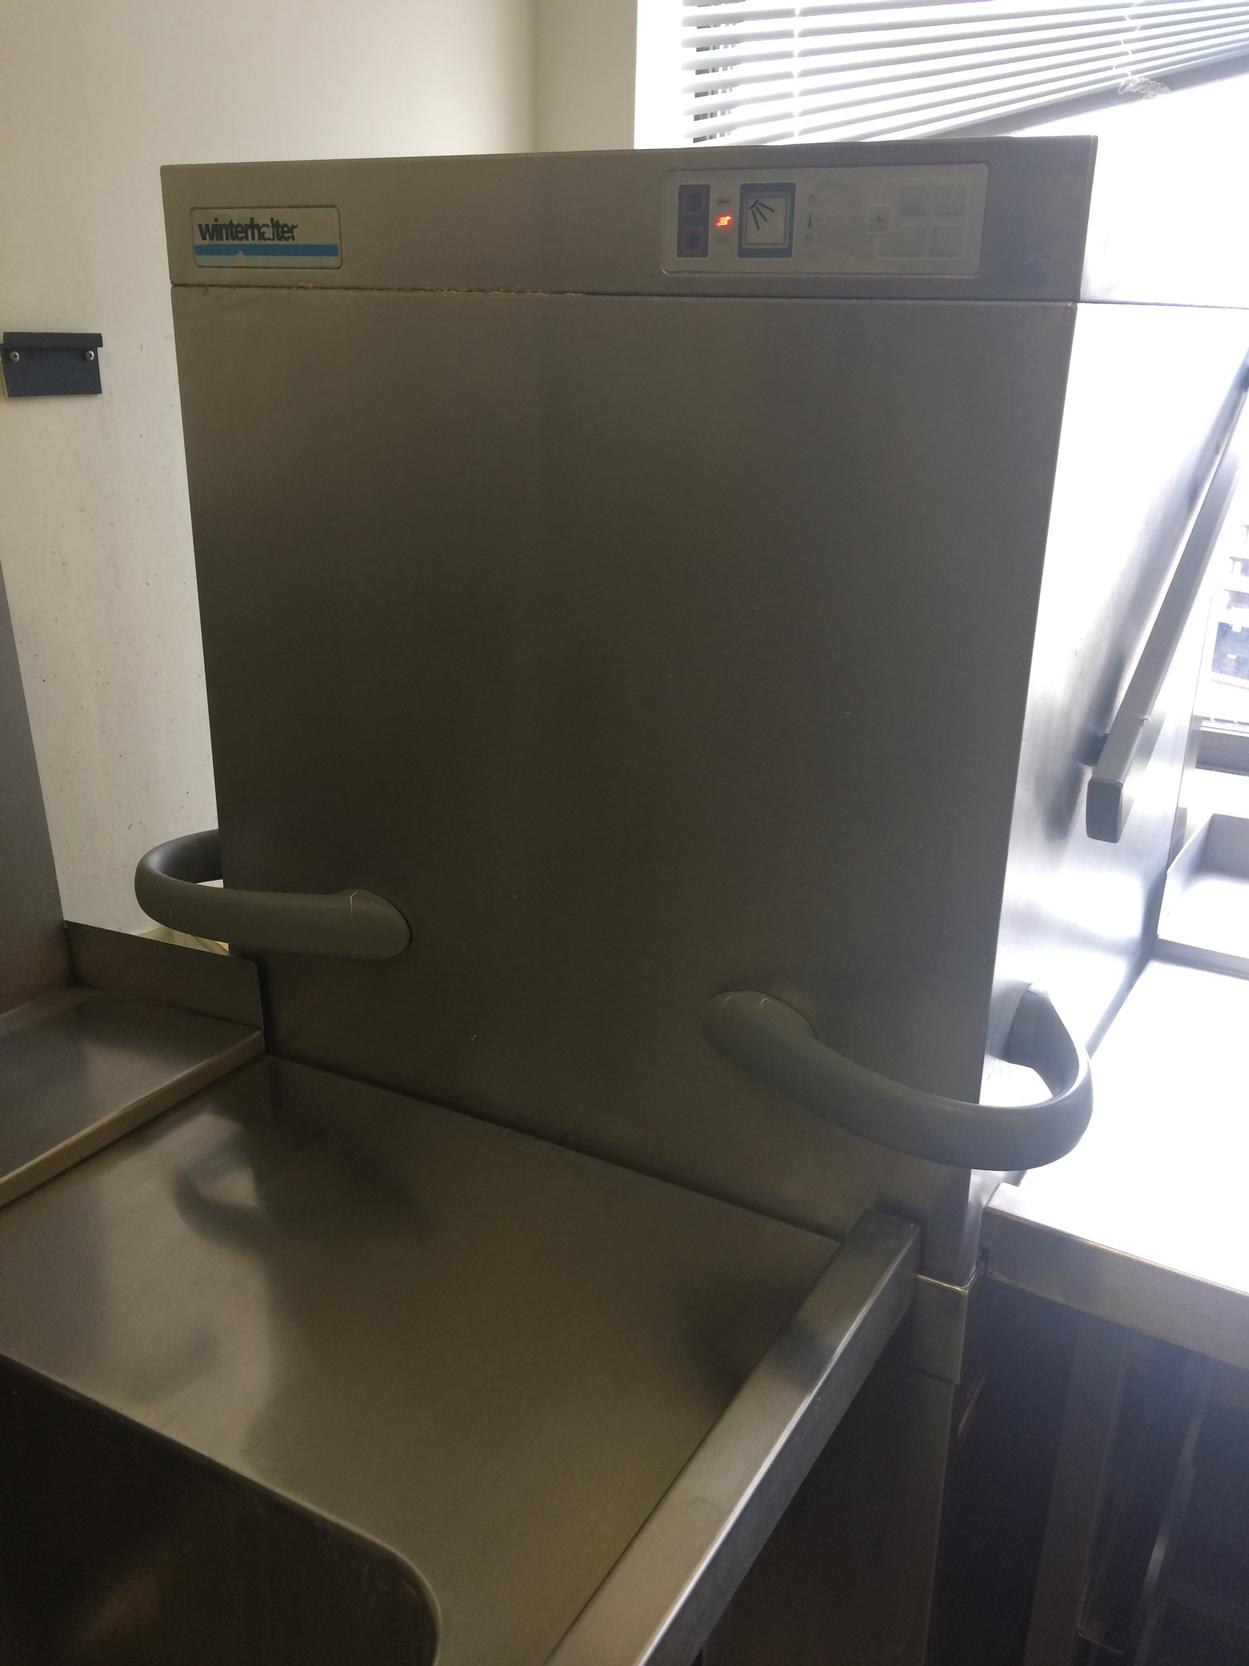 Winterhalter GS502 pass through dishwasher